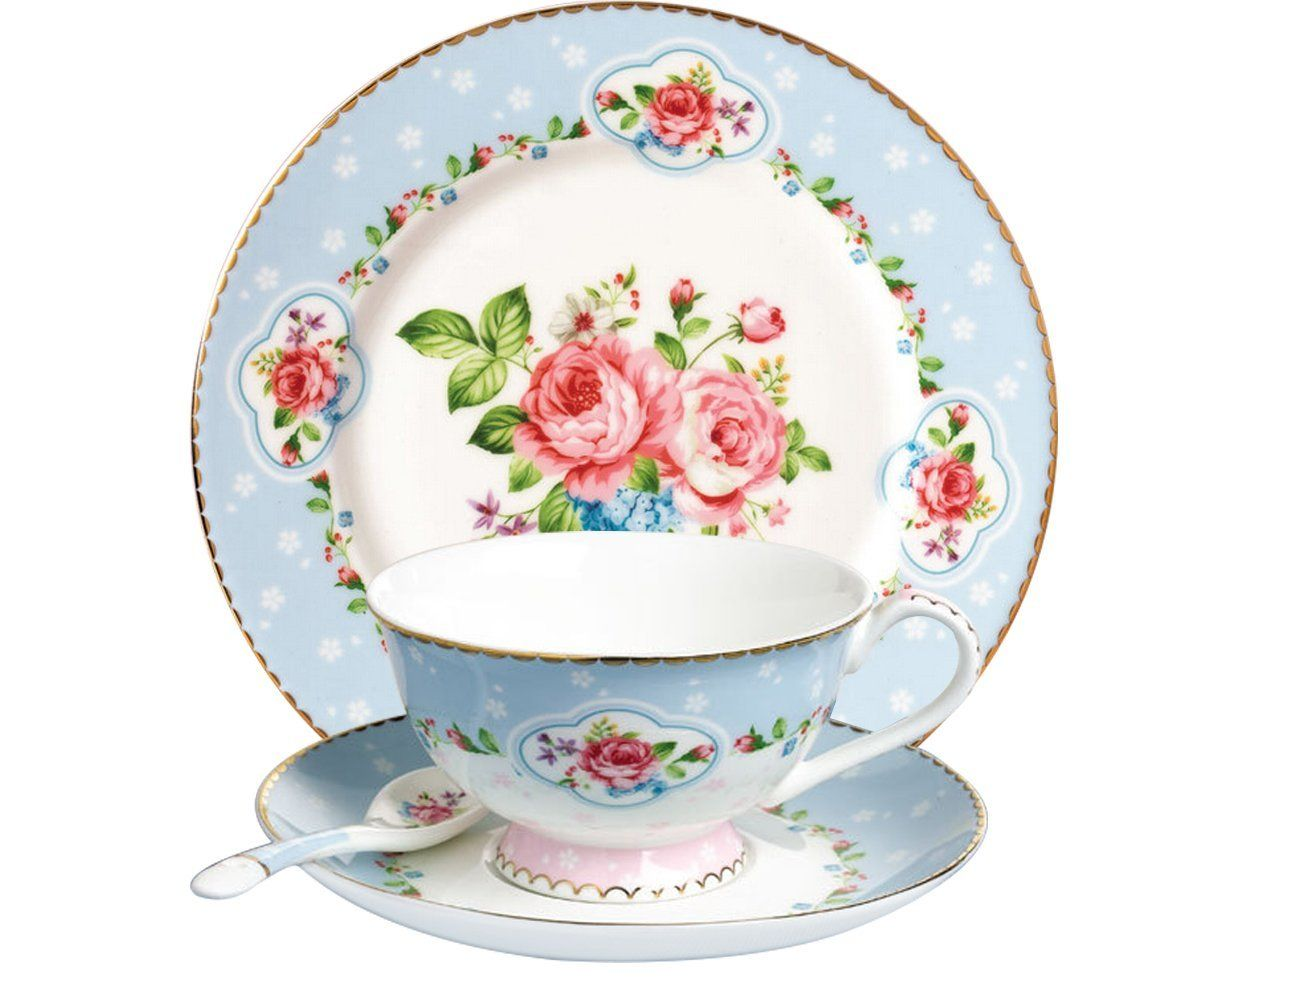 JSAron Romantic Rose Series Porcelain Teacup Saucer spoon and Plate Set Blue  sc 1 st  Pinterest & Amazon.com | JSAron Blue Rose Porcelain 4-Piece Teacup Saucer ...